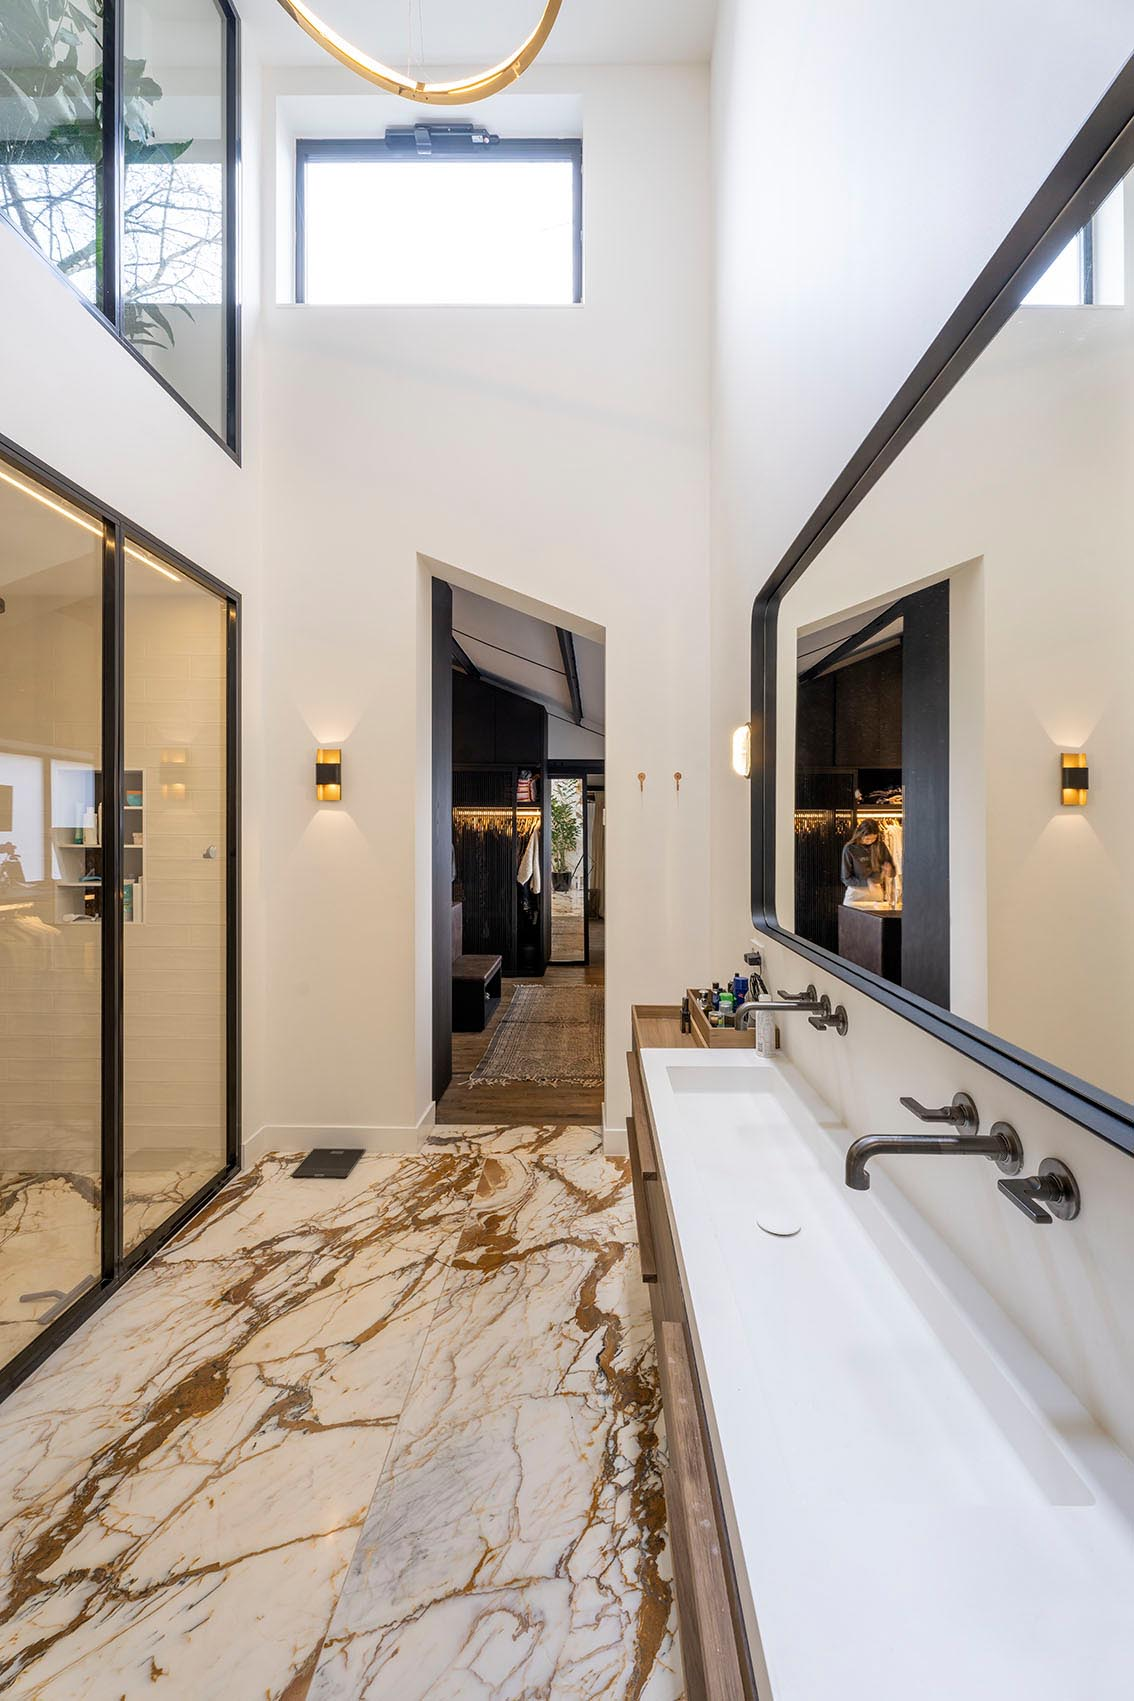 A modern bathroom with a glass-enclosed shower and a long thin vanity with a trough sink.